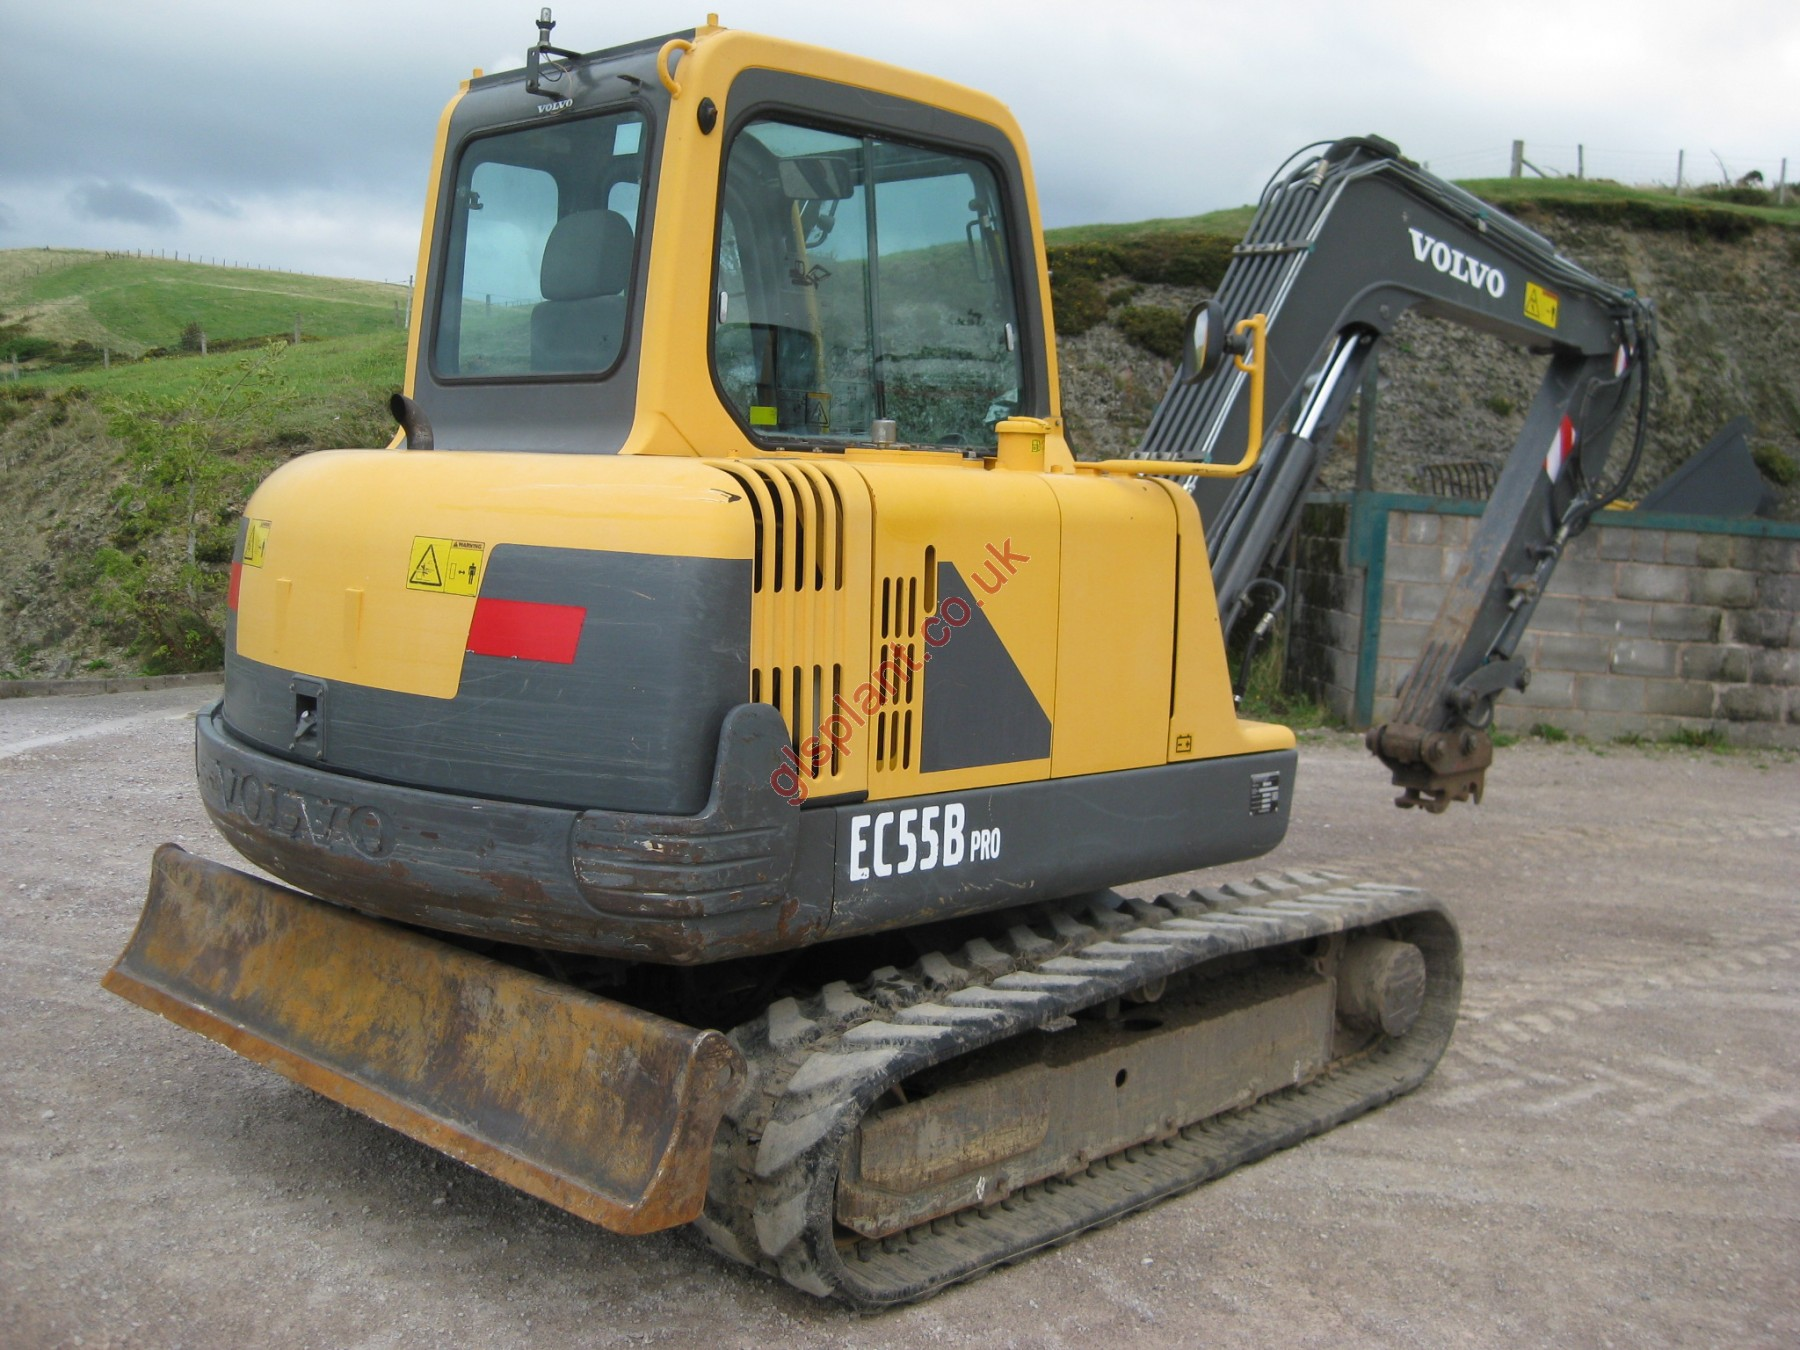 Volvo EC55B Pro Midi Excavator For Sale